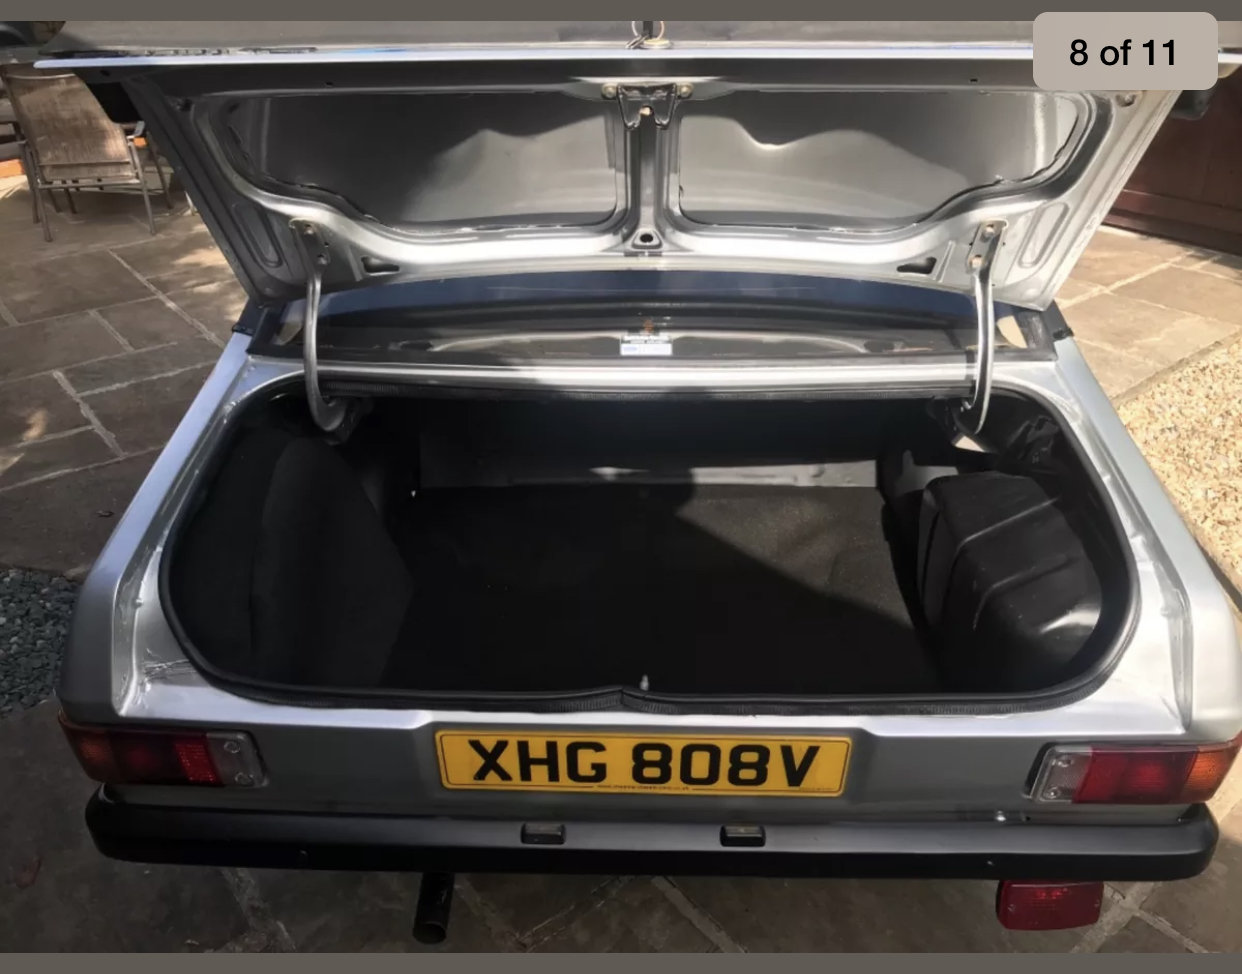 1980 Ford escort harrier 1600cc, strato silver For Sale (picture 6 of 6)